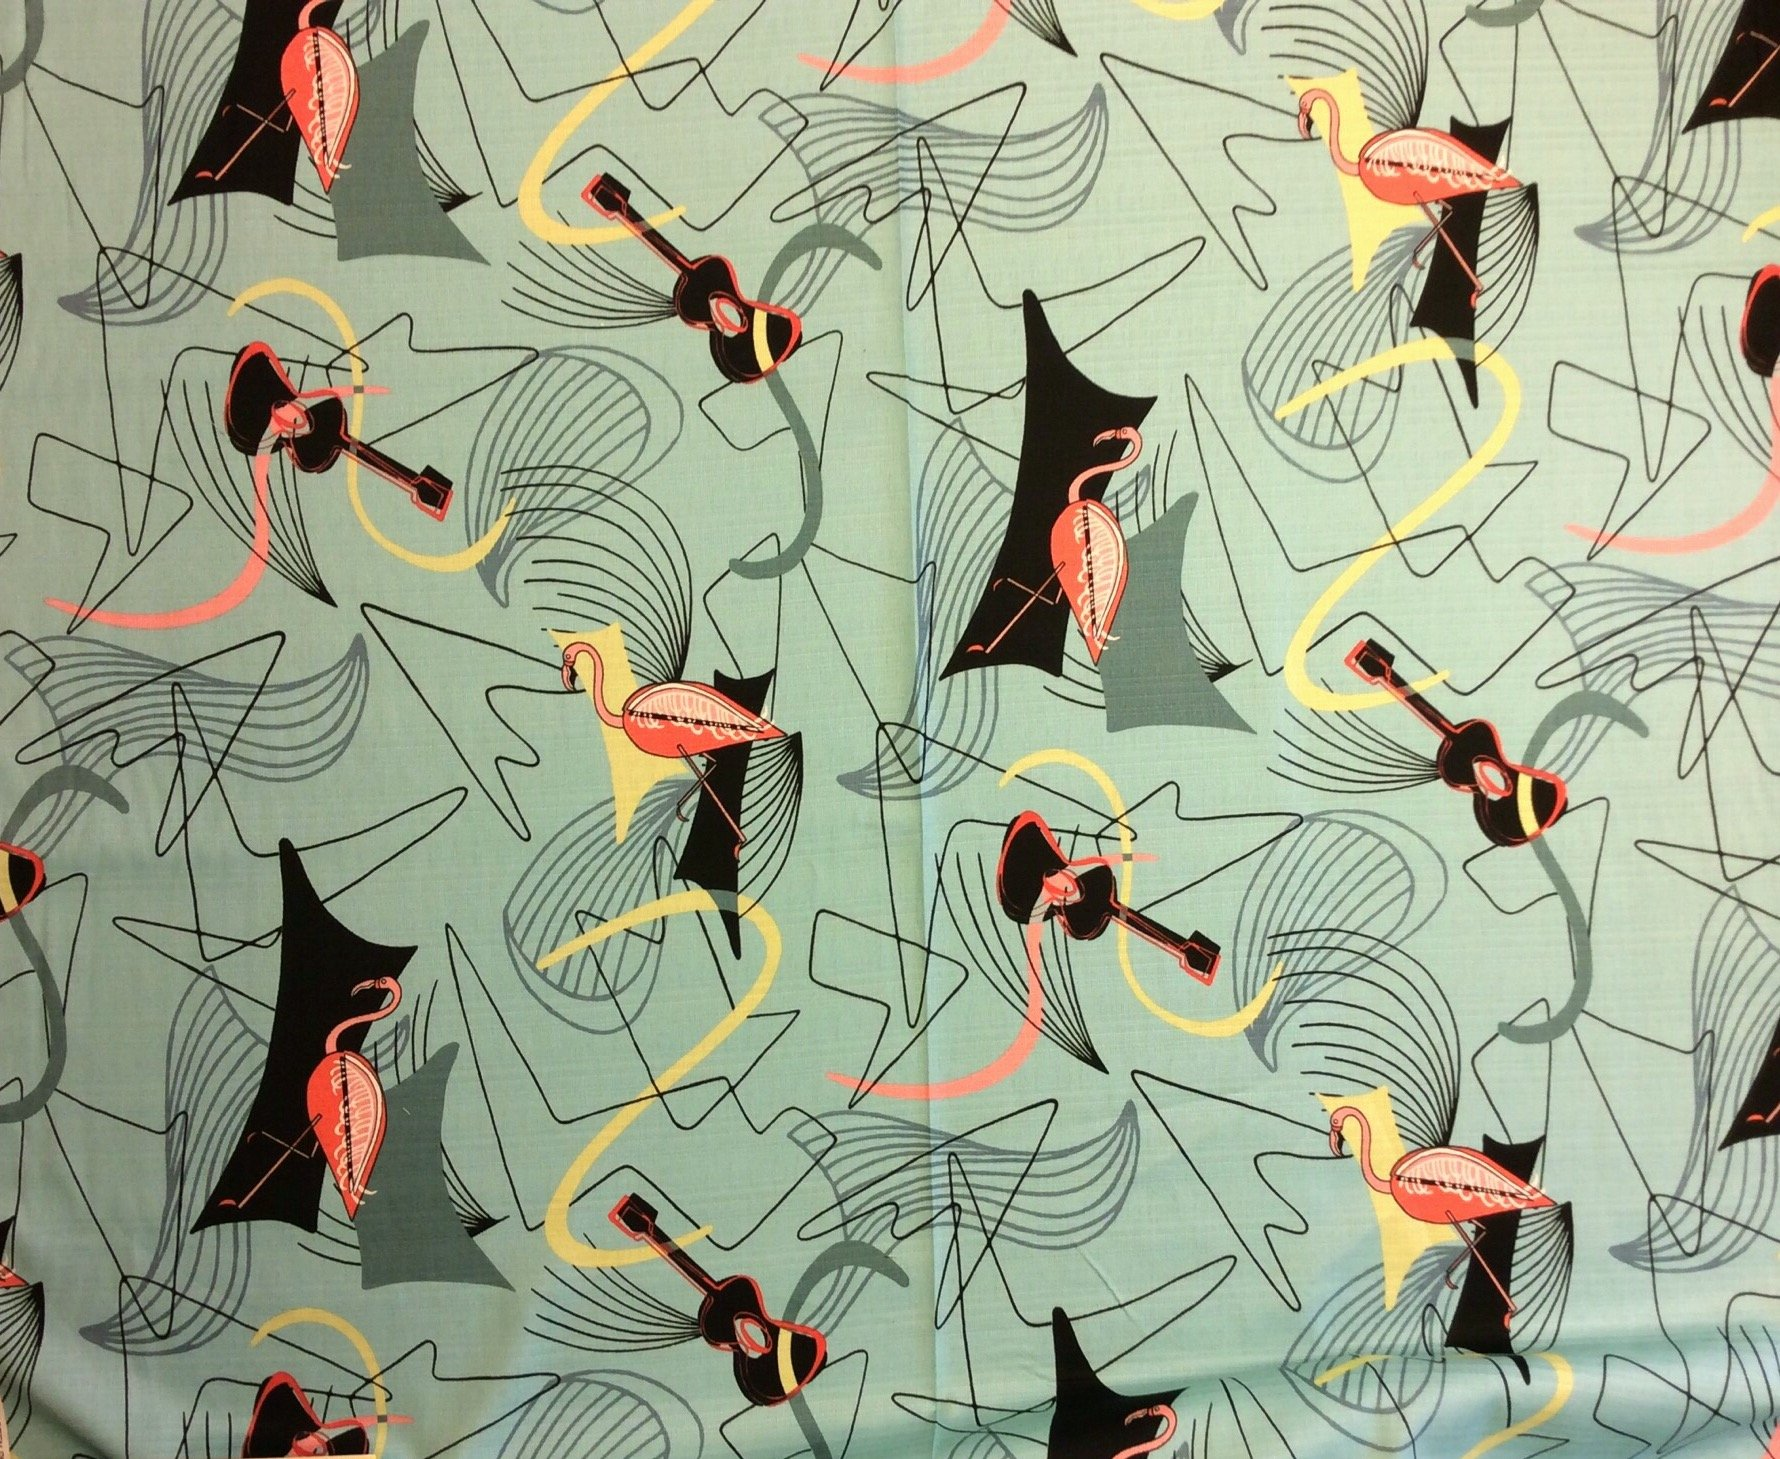 Atomic Retro Barkcloth Flamingo Boomerang Sputnik MCM Mid Century Modern Slubby Texture Home Dec Cotton Fabric NT39